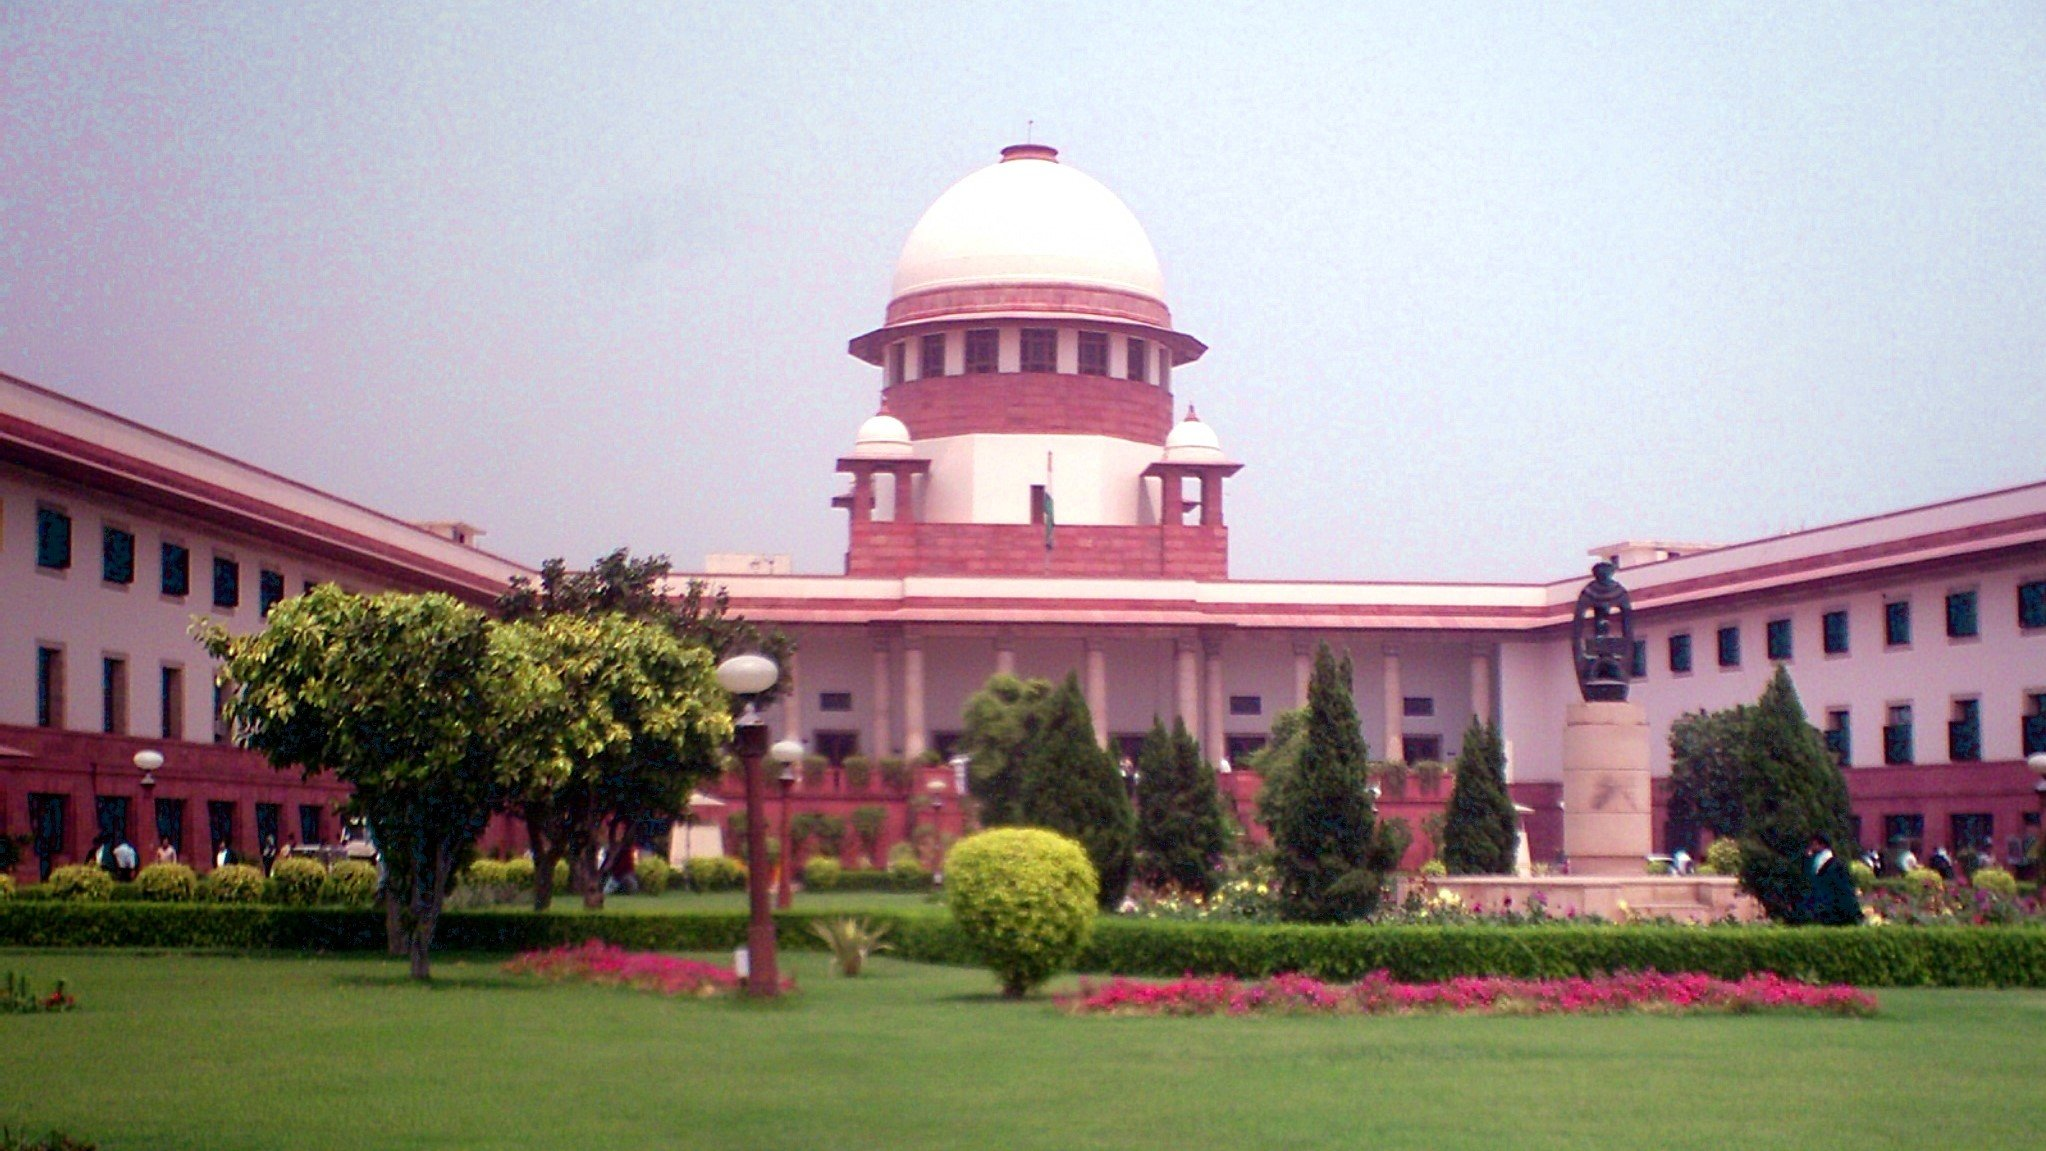 Supreme Court Acquits Four Convicted In 2001 Kanpur Riots. How Much Is Self Storage Cheap Online College. Leads For Your Business Mapfre Auto Insurance. Antique Casement Windows Anaheim Lock And Key. Practice Speaking English Online. Grand Cherokee Jeep 2011 Birth Control Issues. London Insurance Companies Voip Best Service. Chromosome Structure And Function. Project Management Training Material